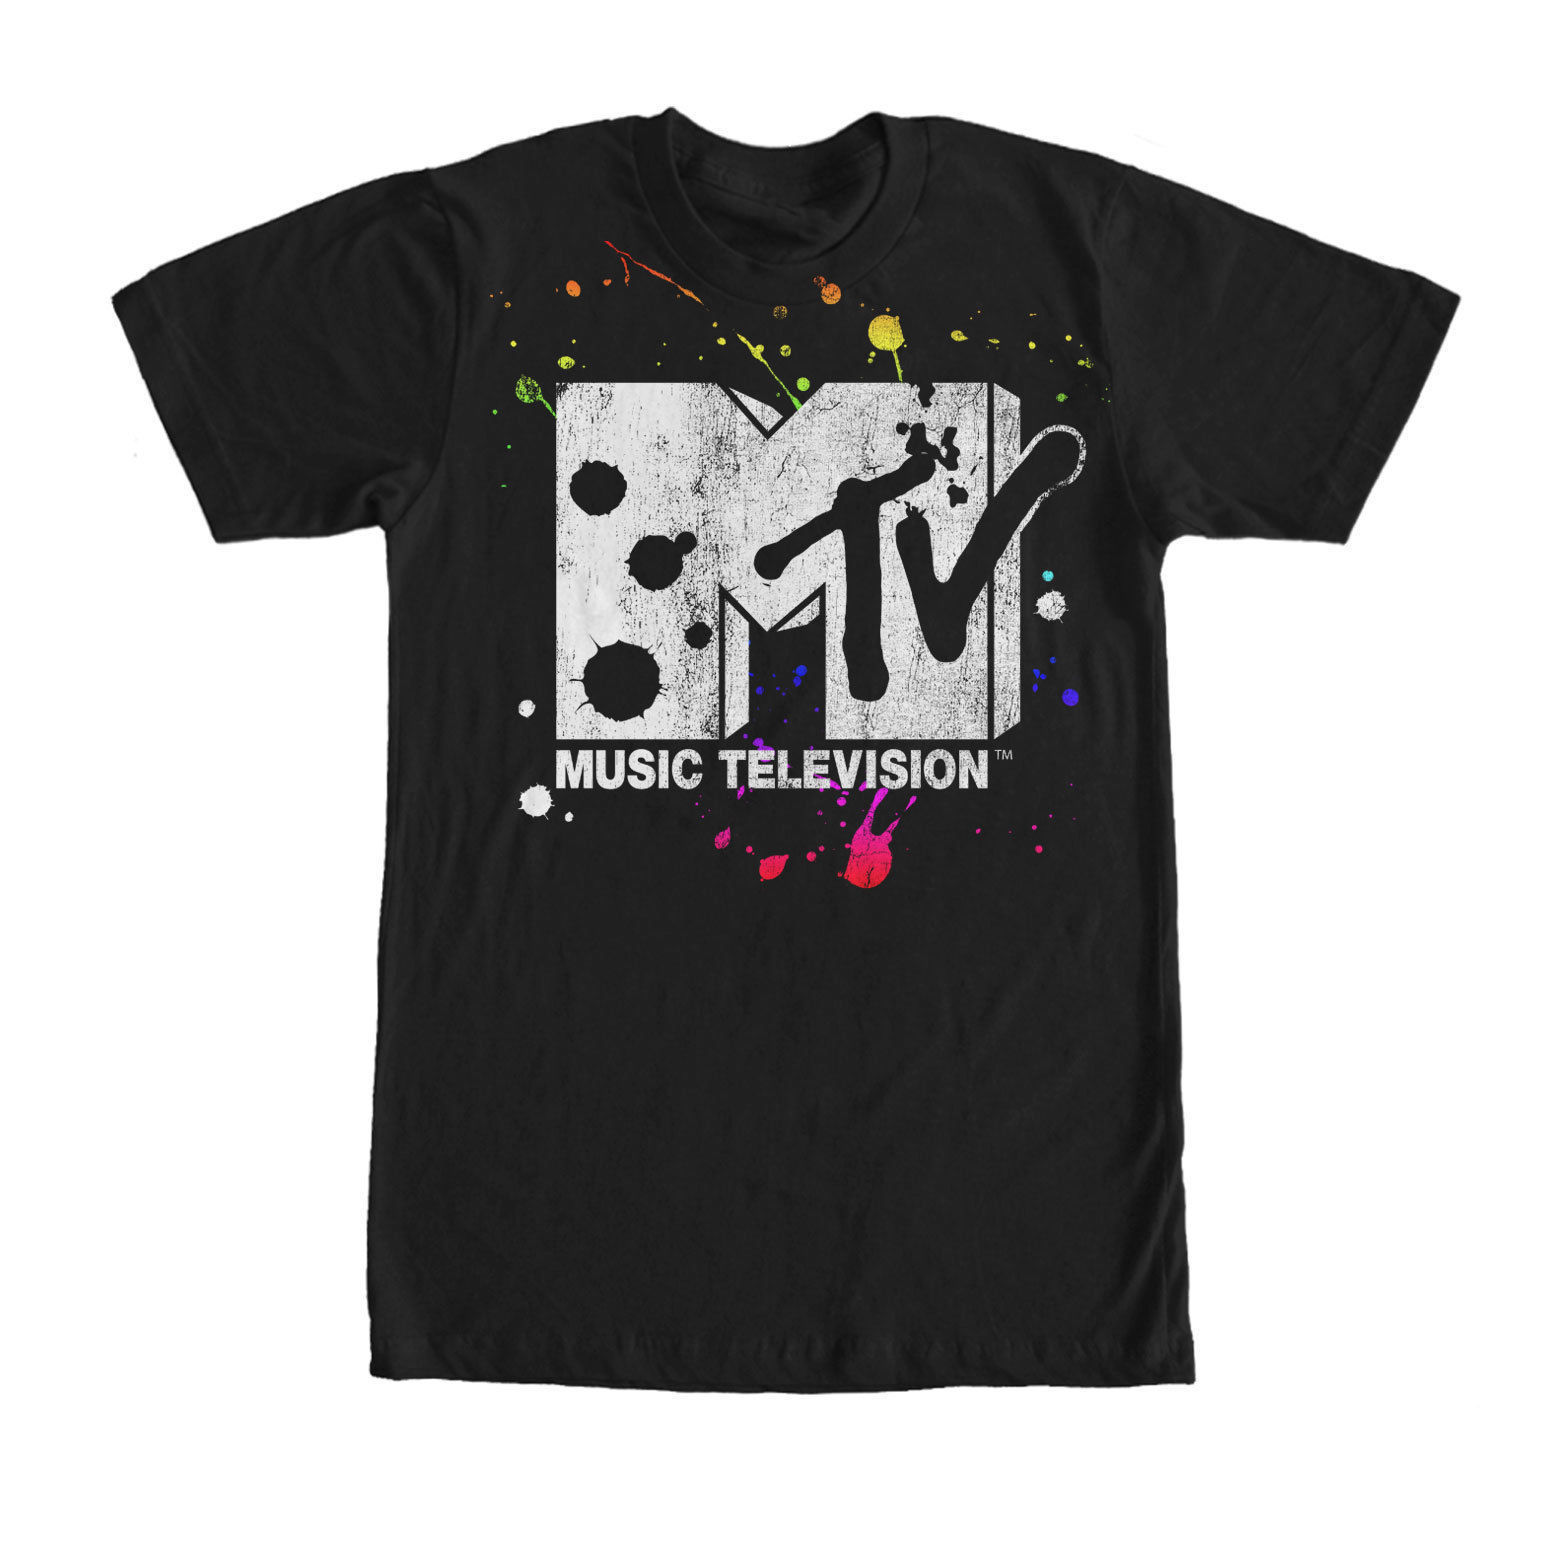 6197fdaa338a Detail Feedback Questions about MTV Paint Splatter Logo Mens Graphic T Shirt  Black M L 234XL Cool Casual pride t shirt men Unisex New Fashion tshirt  Loose ...